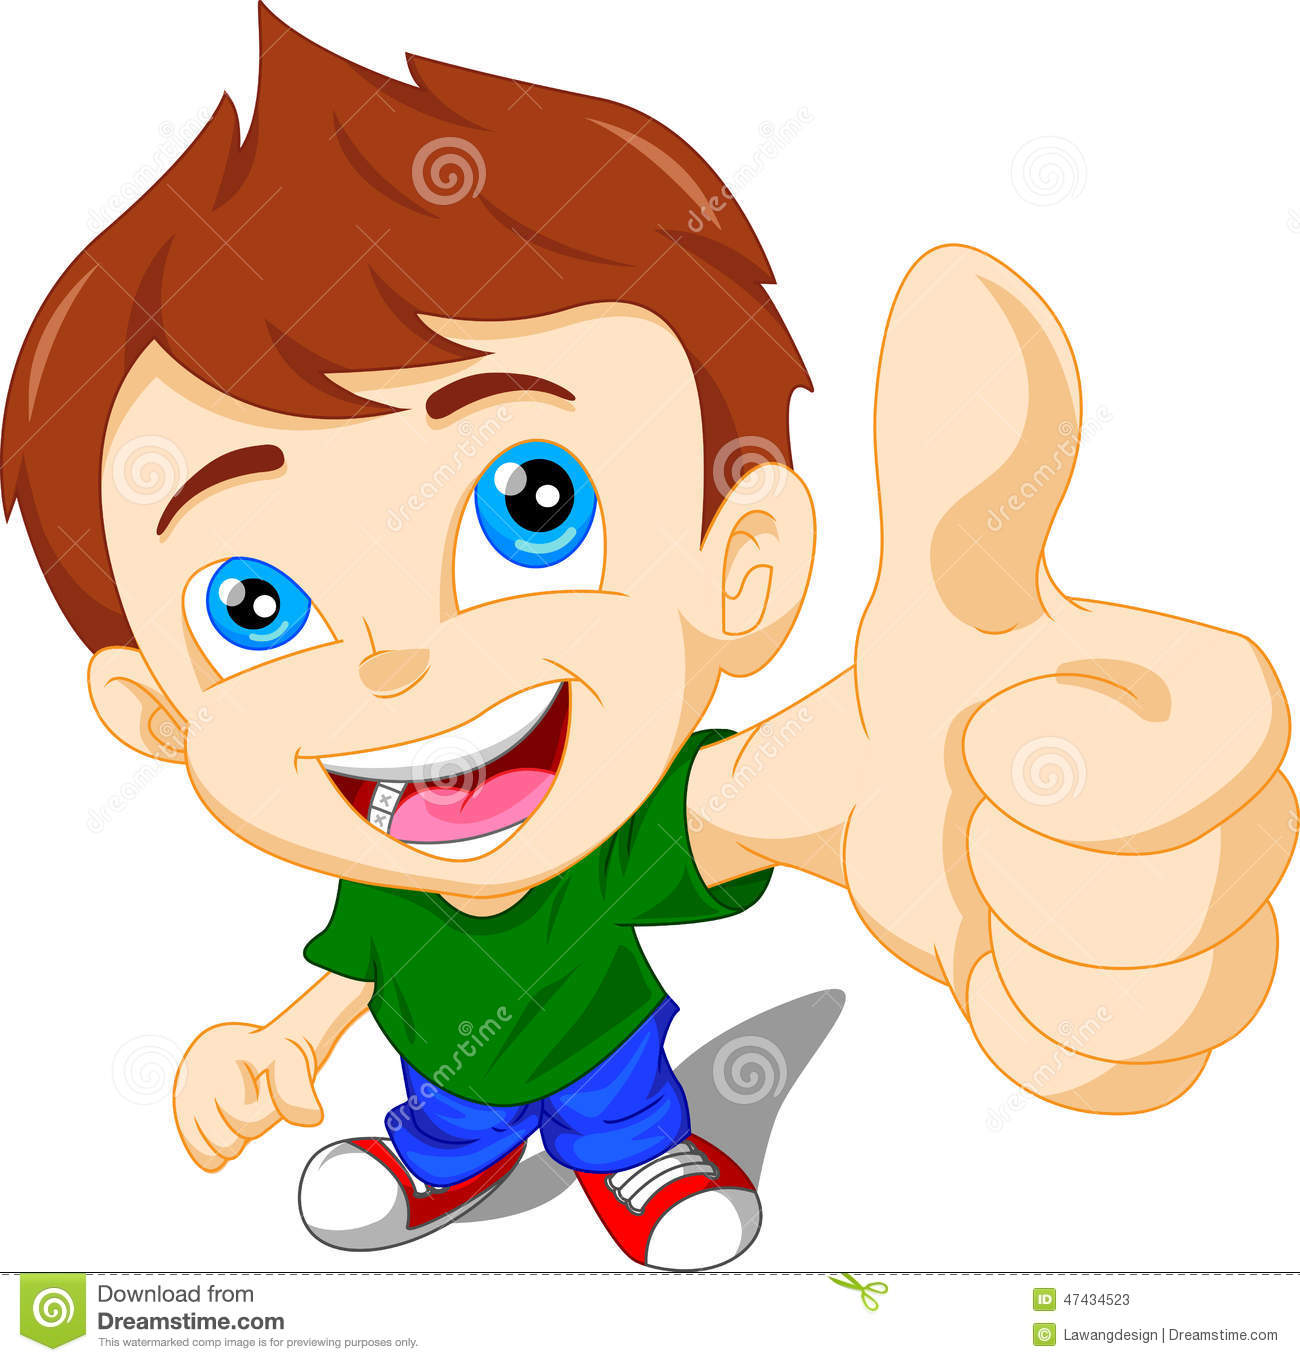 Little boy giving thumbs up clipart jpg free download Cute Little Boy Giving You Thumbs Up Stock Vector - Image: 47434523 jpg free download